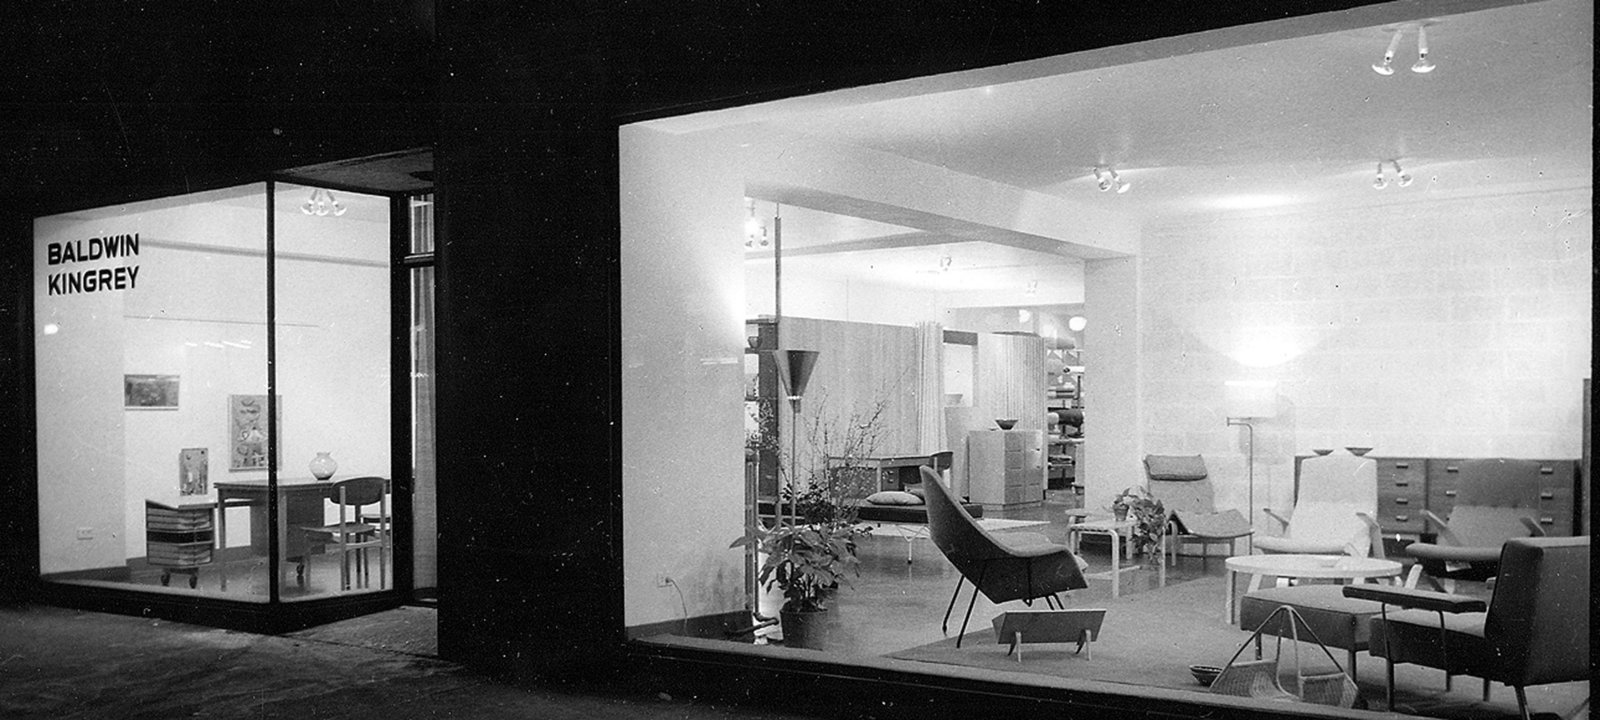 Baldwin Kingrey store, Chicago  Photo 11 of 21 in How American Modernism Came to the Mountains